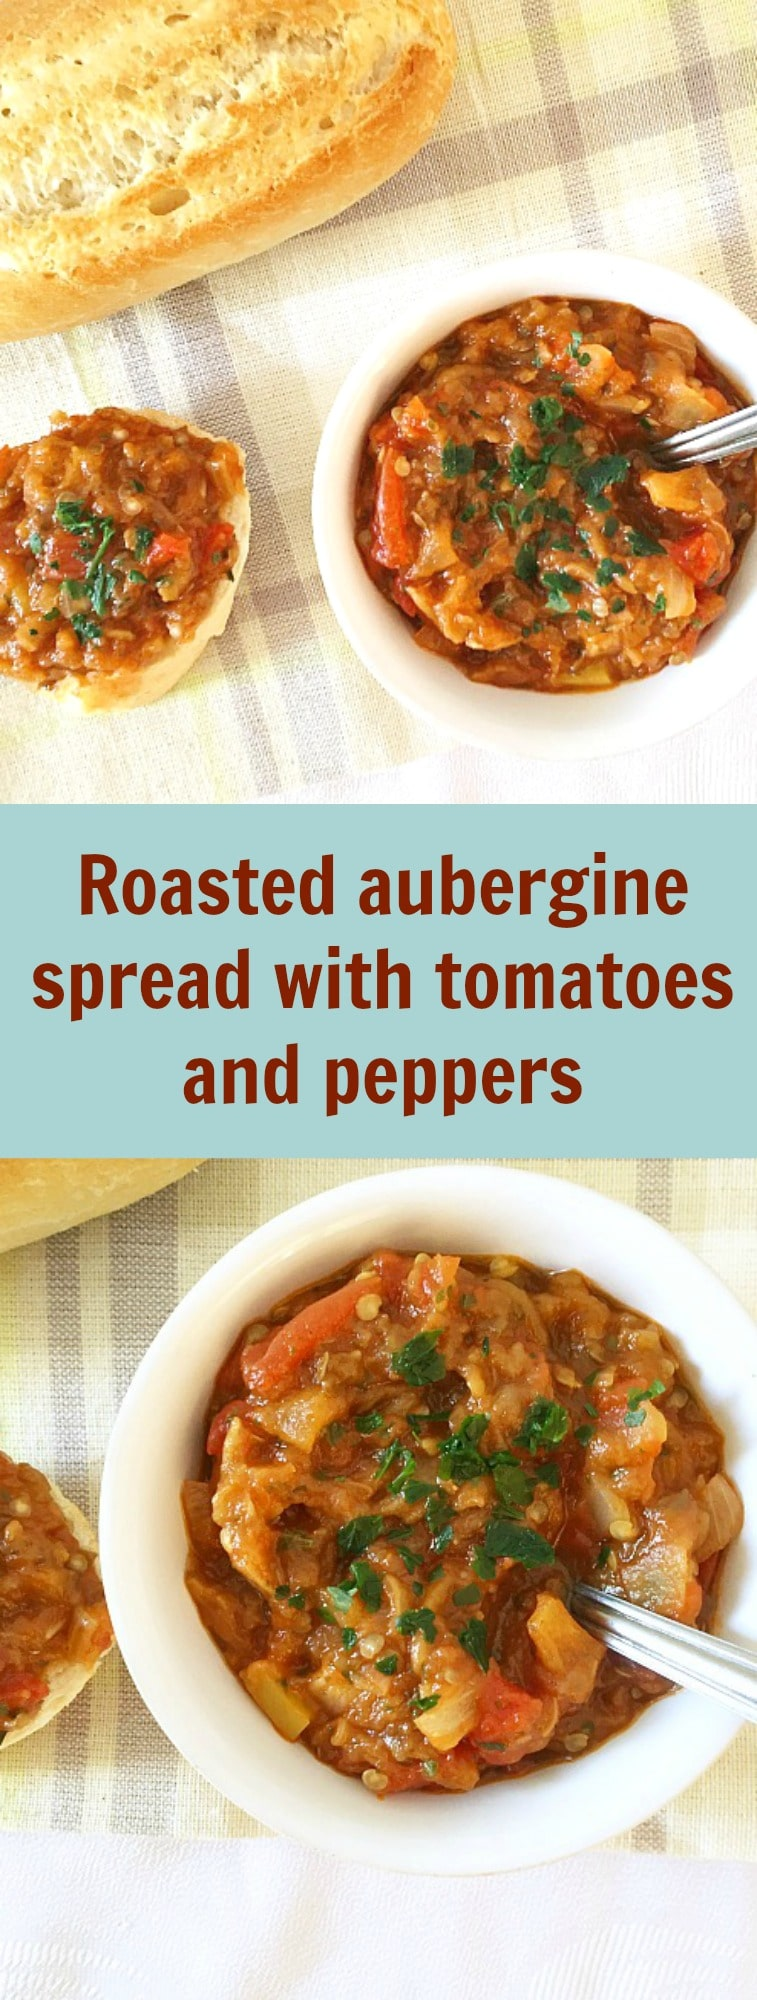 Roasted aubergine spread with tomatoes and peppers